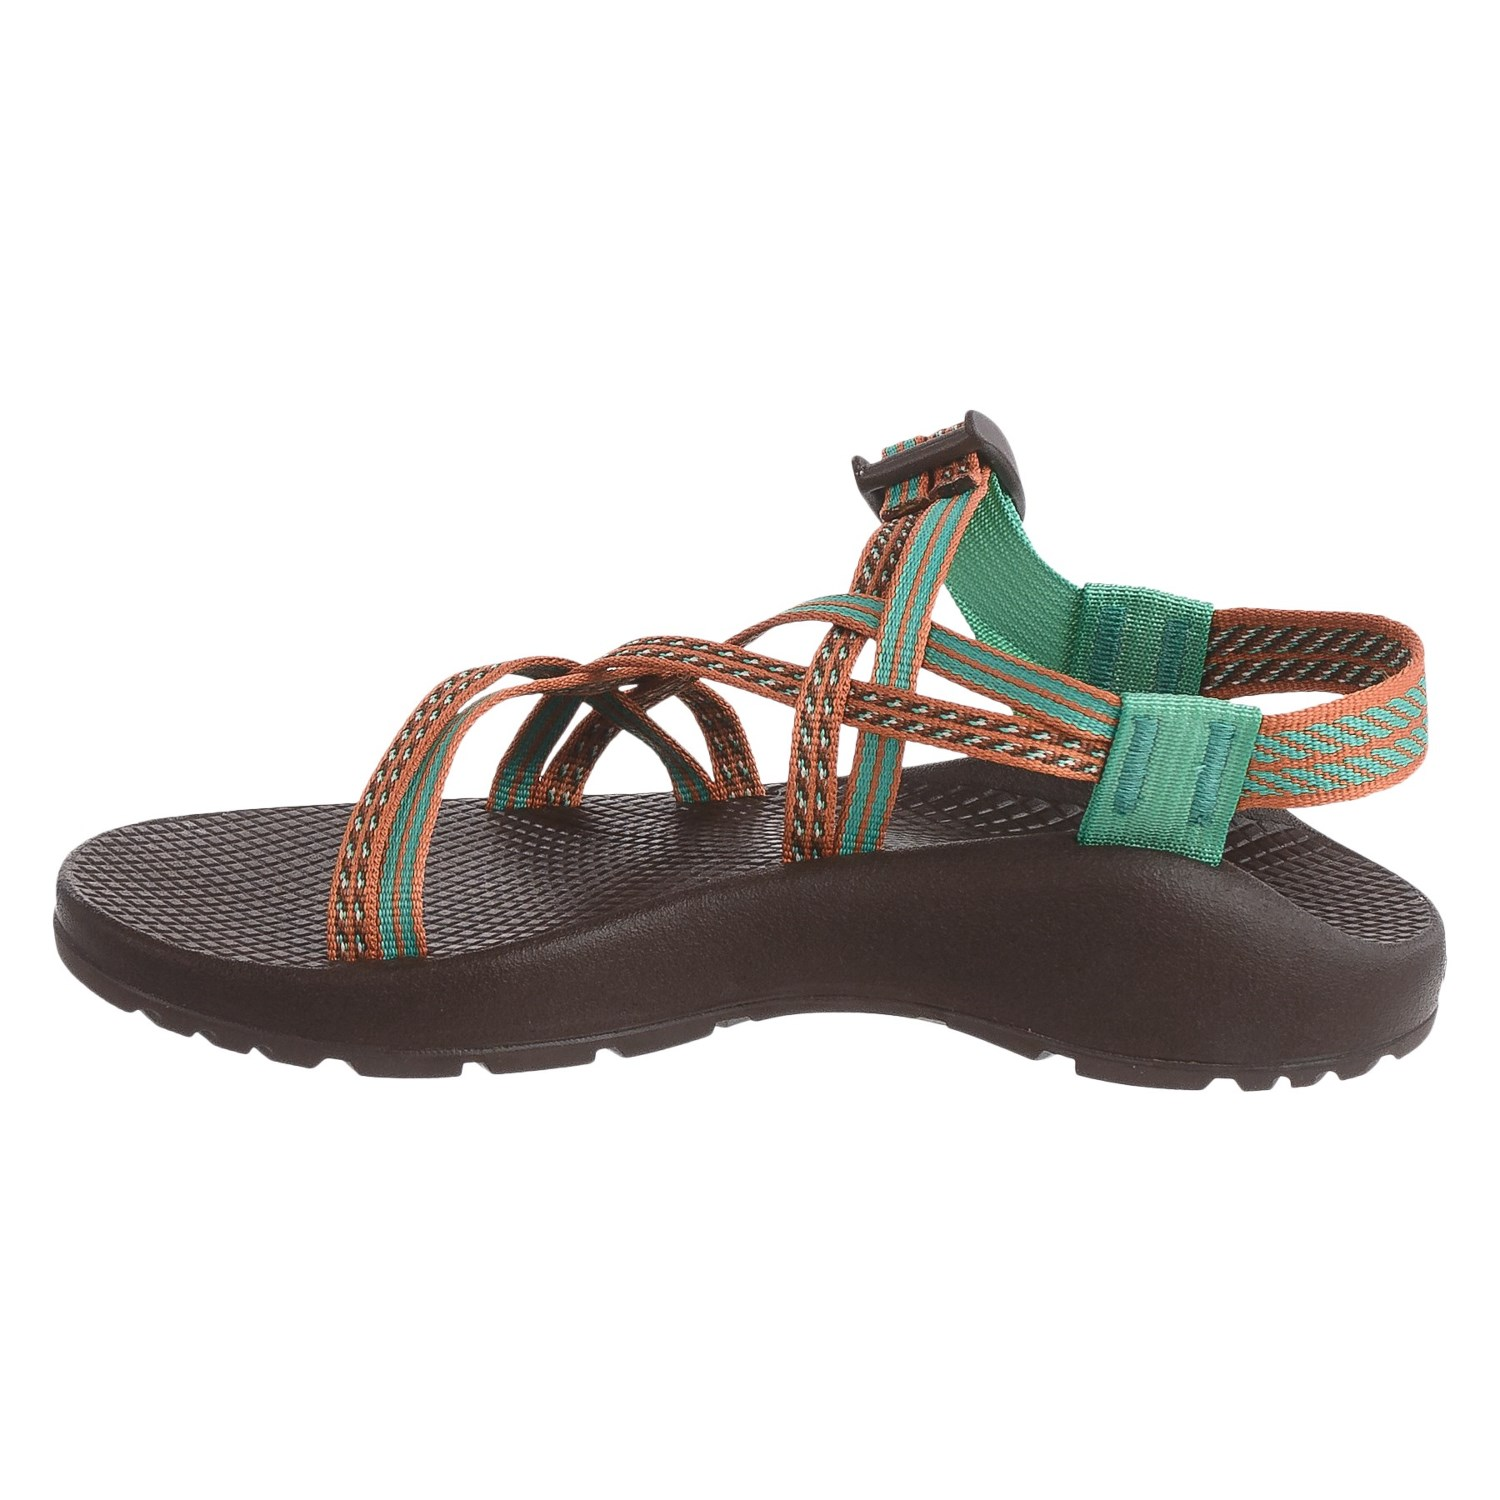 4f1f1903a Chaco ZX 1 Classic Sport Sandals (For Women) - Save 42%